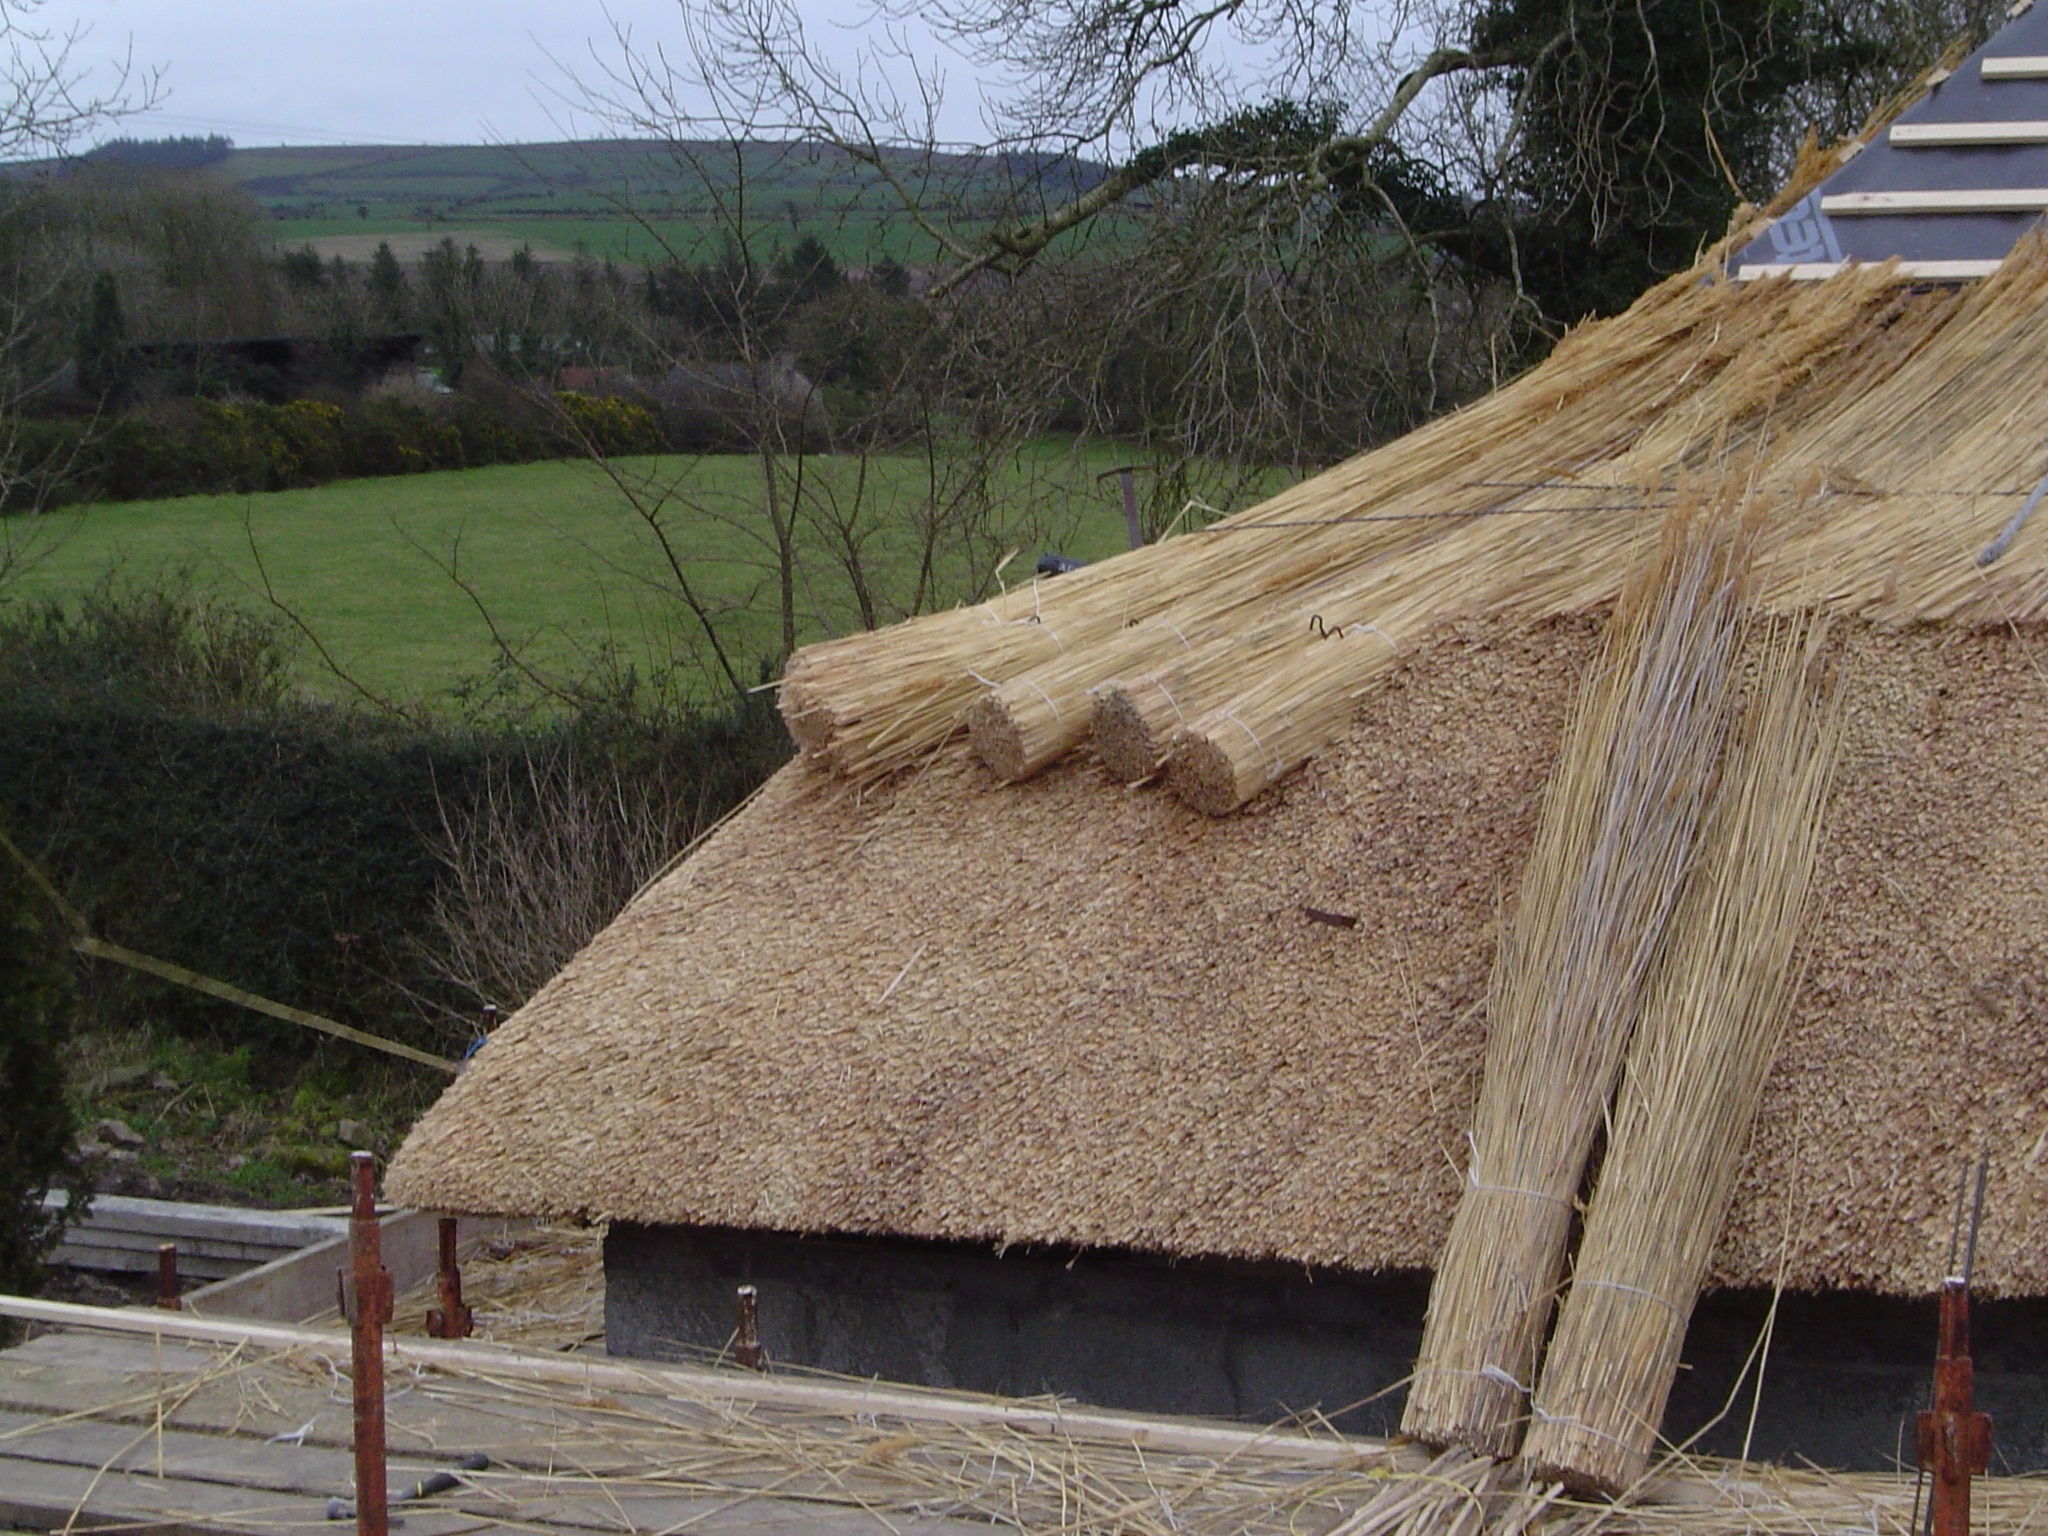 Roof Thatching with Water Reed.